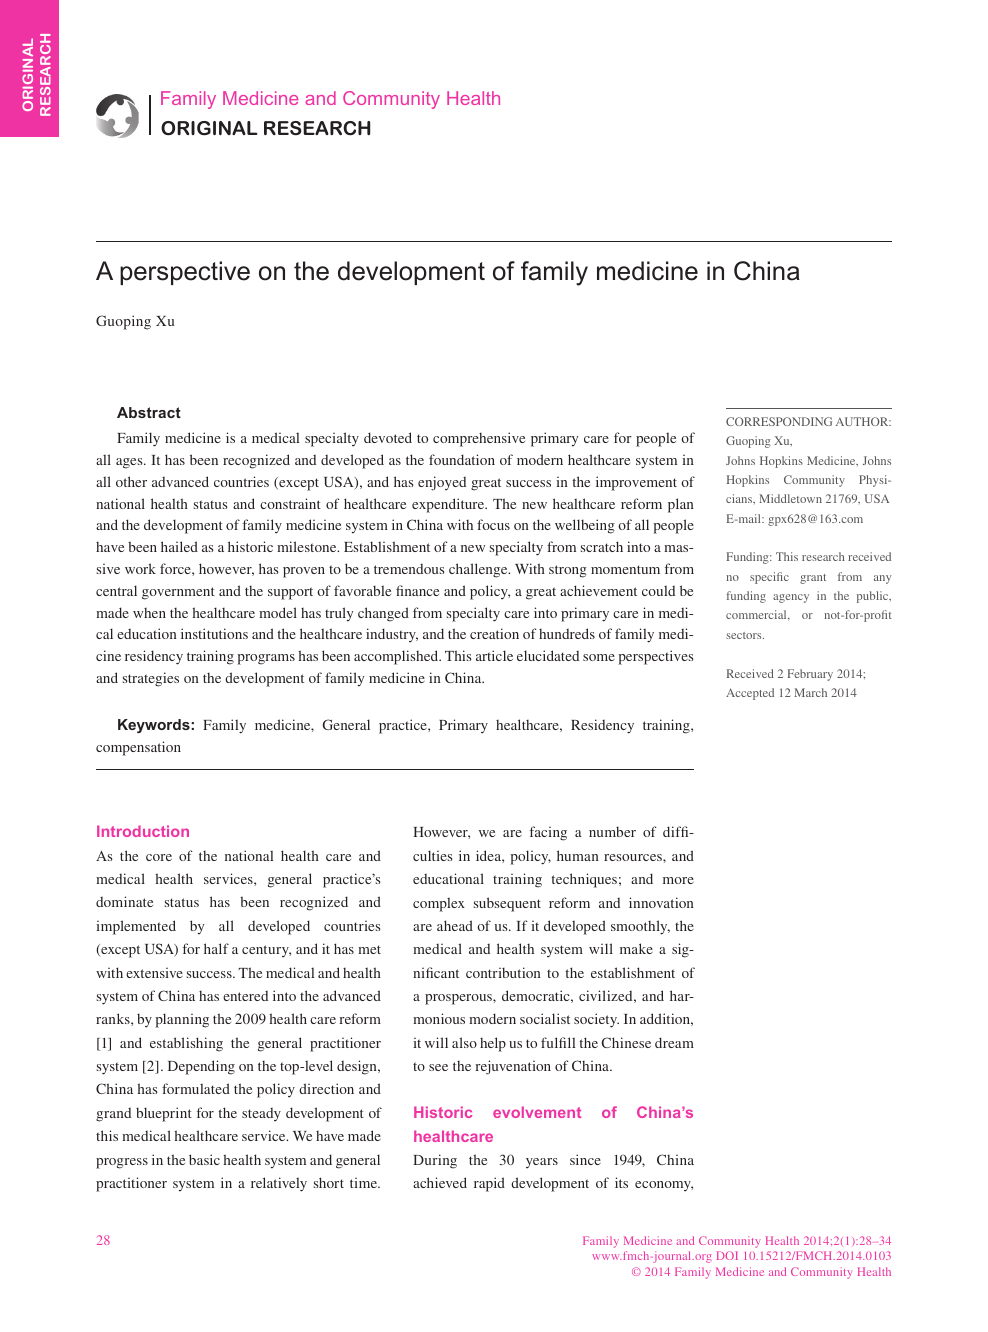 A perspective on the development of family medicine in China